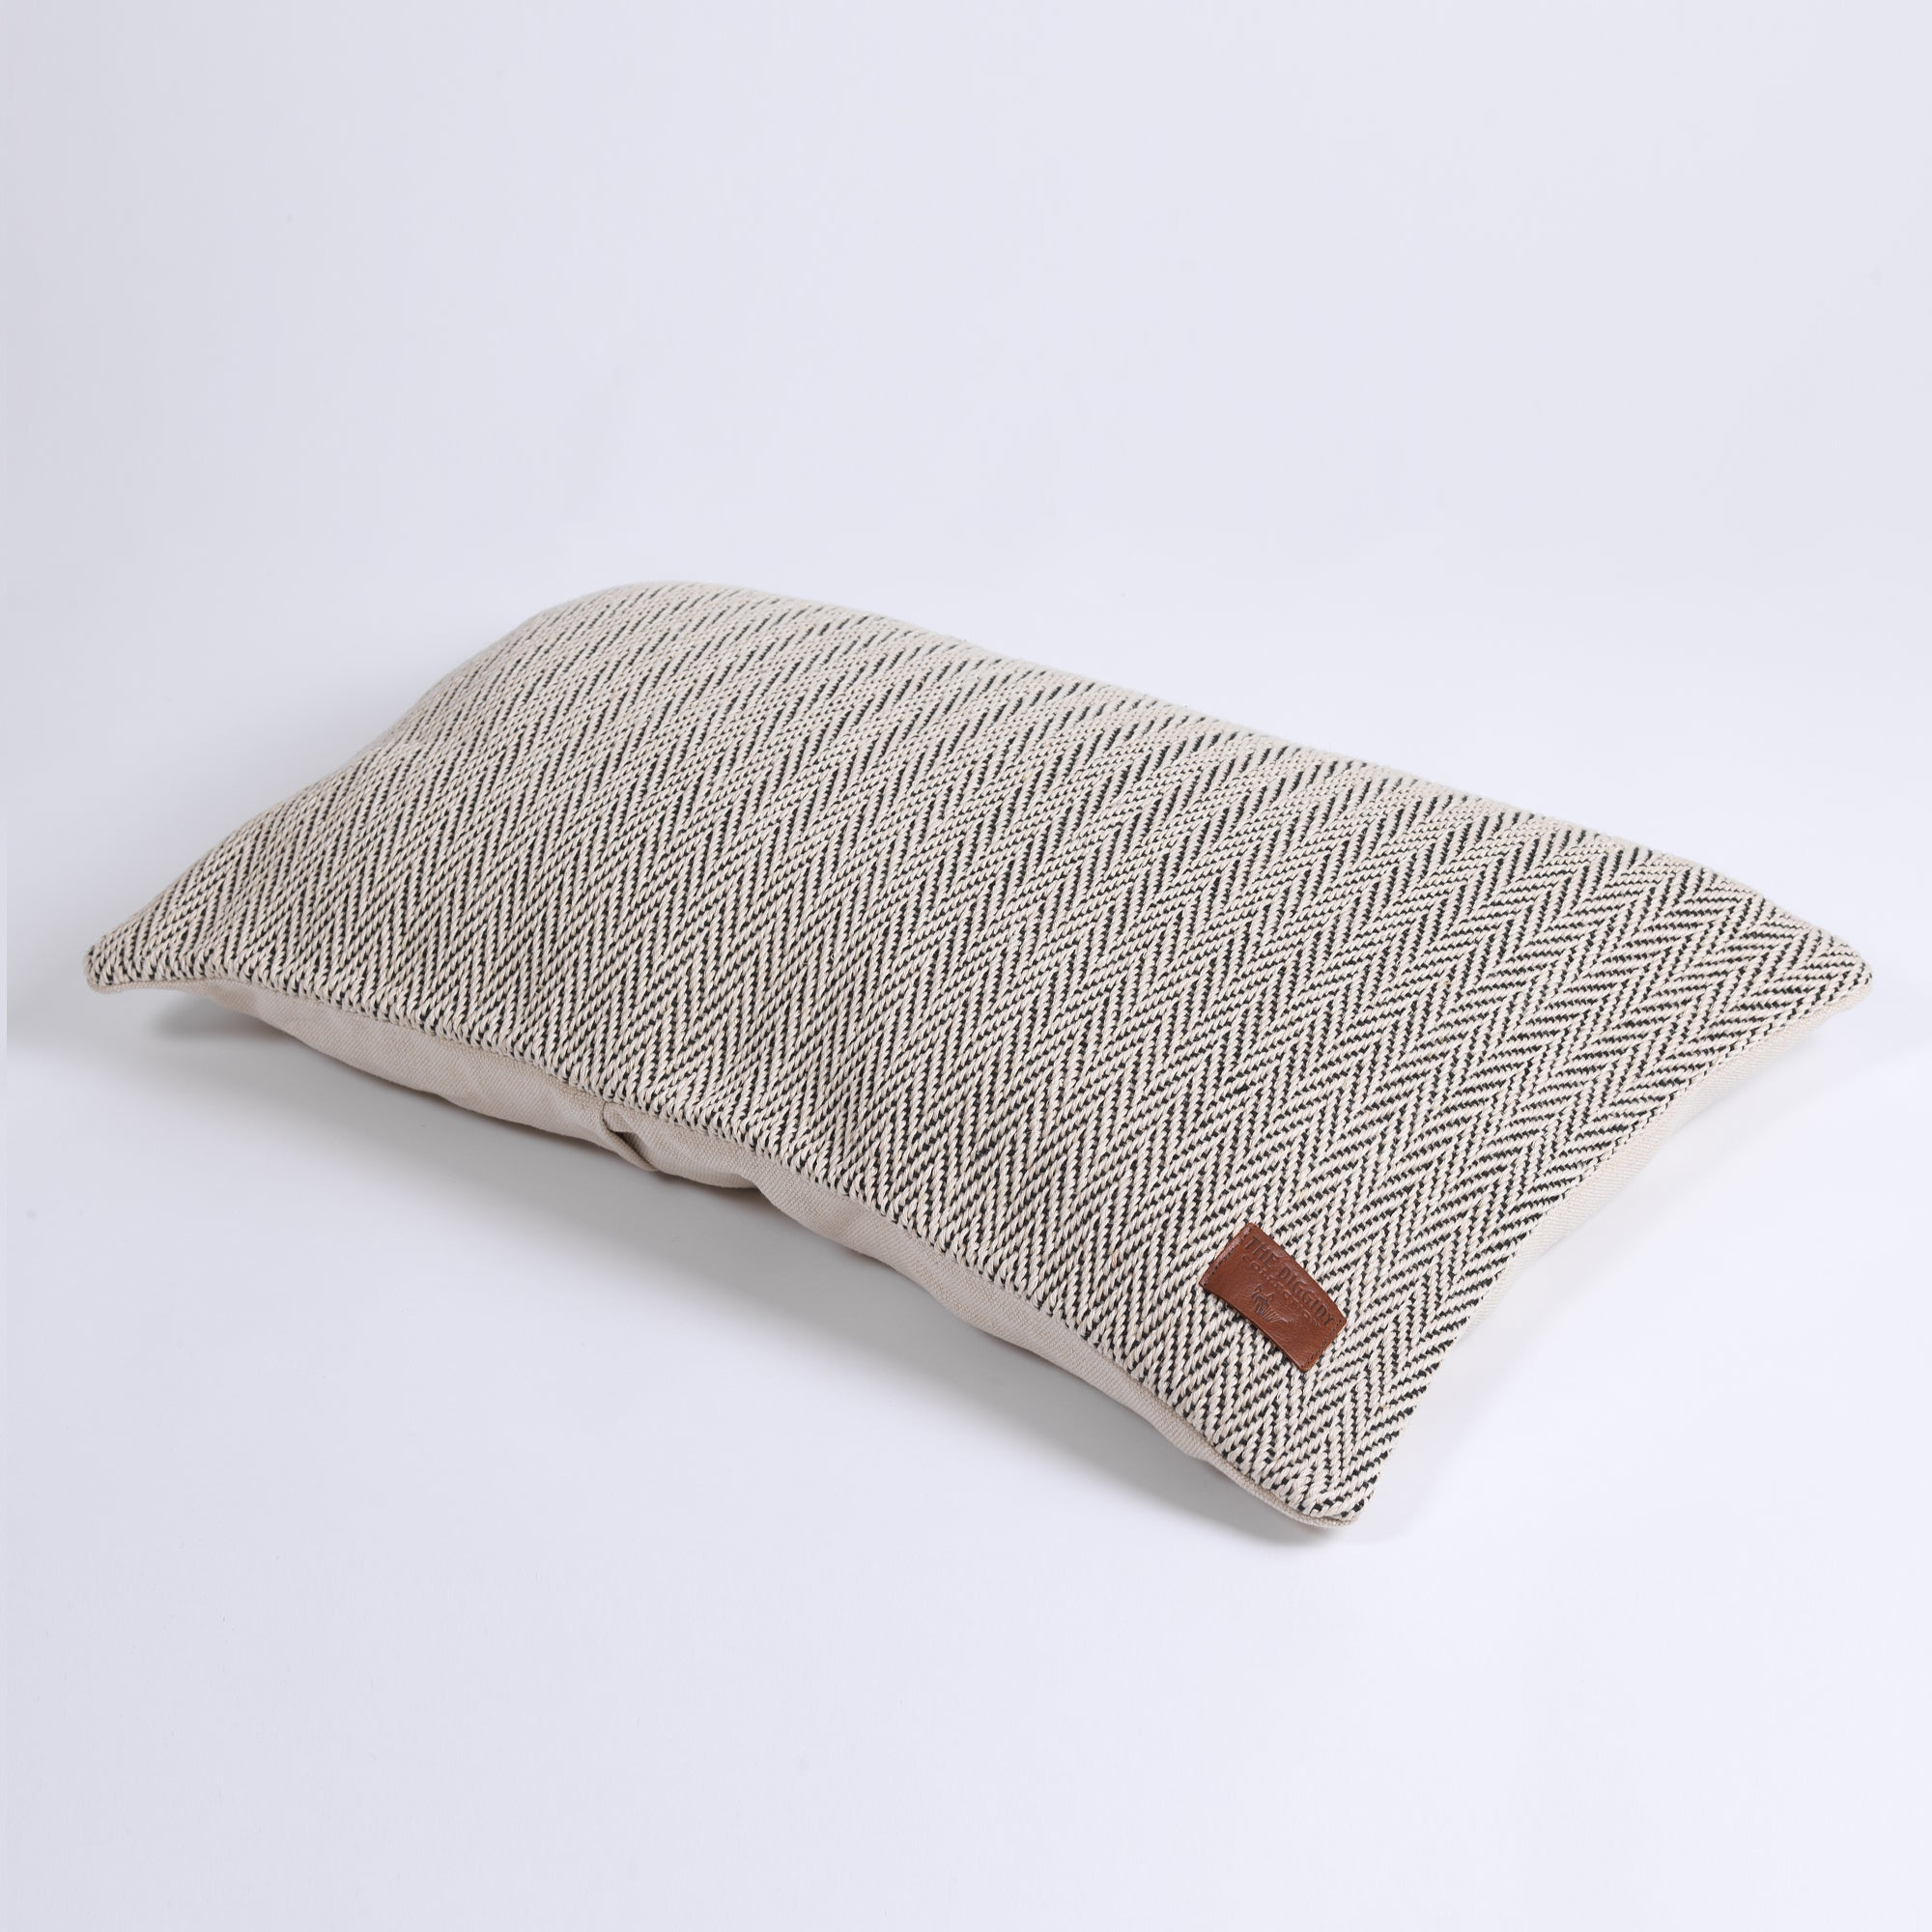 DC Herringbone Hemp Pillow Cover black